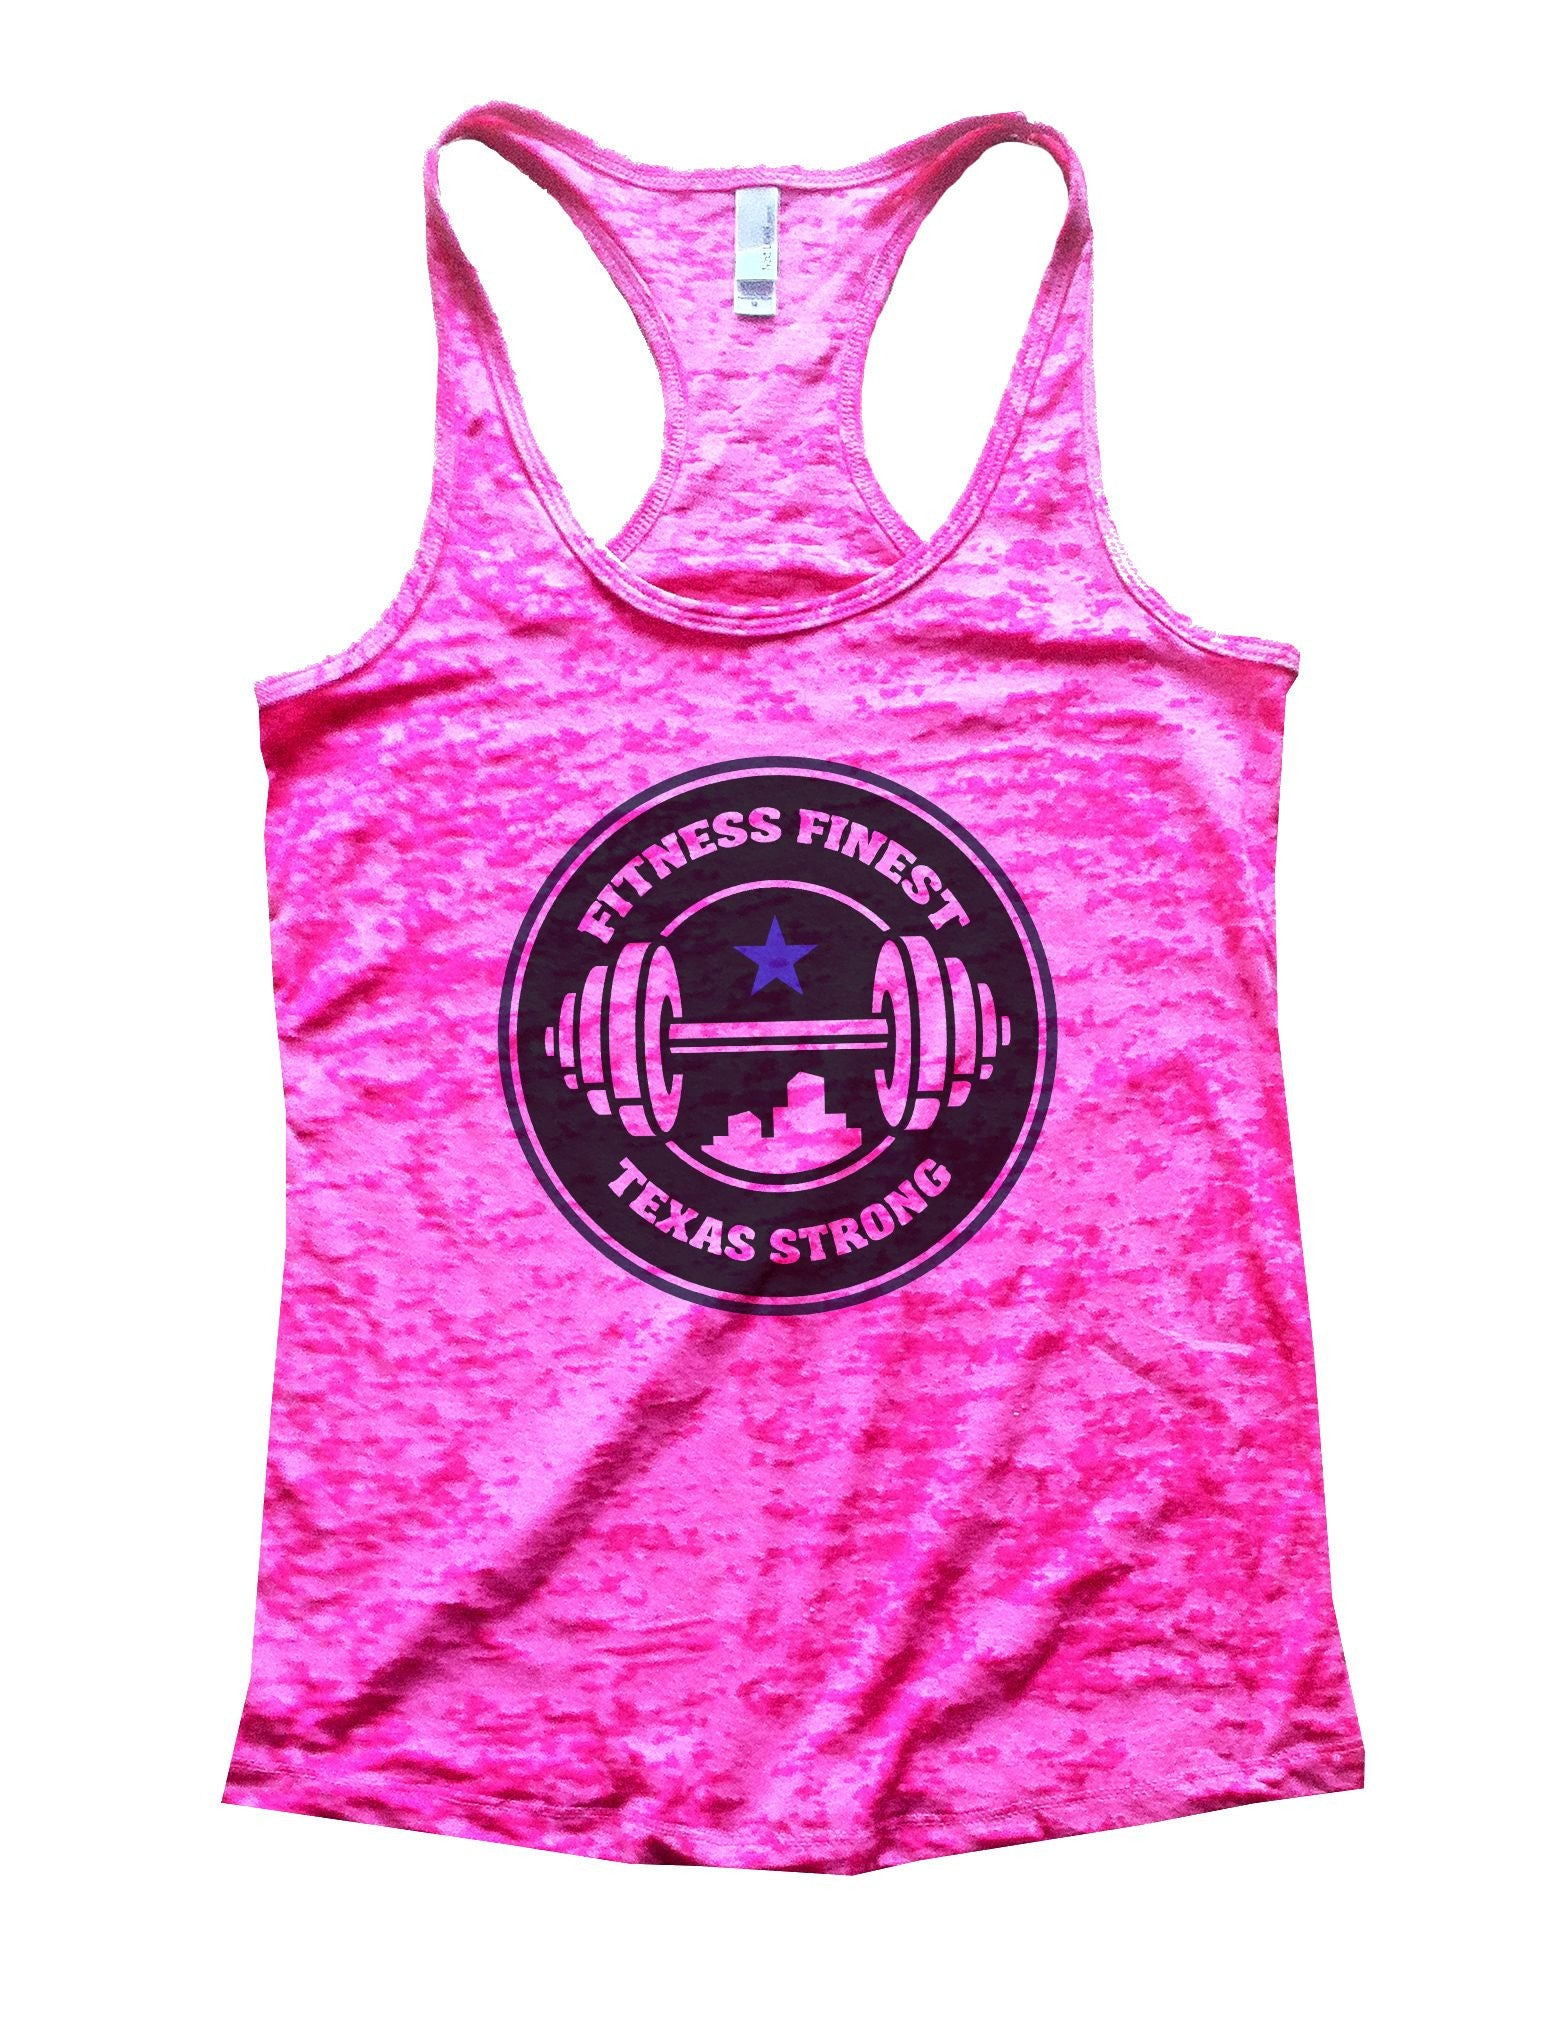 Fitness Finest Texas Strong Burnout Tank Top By BurnoutTankTops.com - 778 - Funny Shirts Tank Tops Burnouts and Triblends  - 3